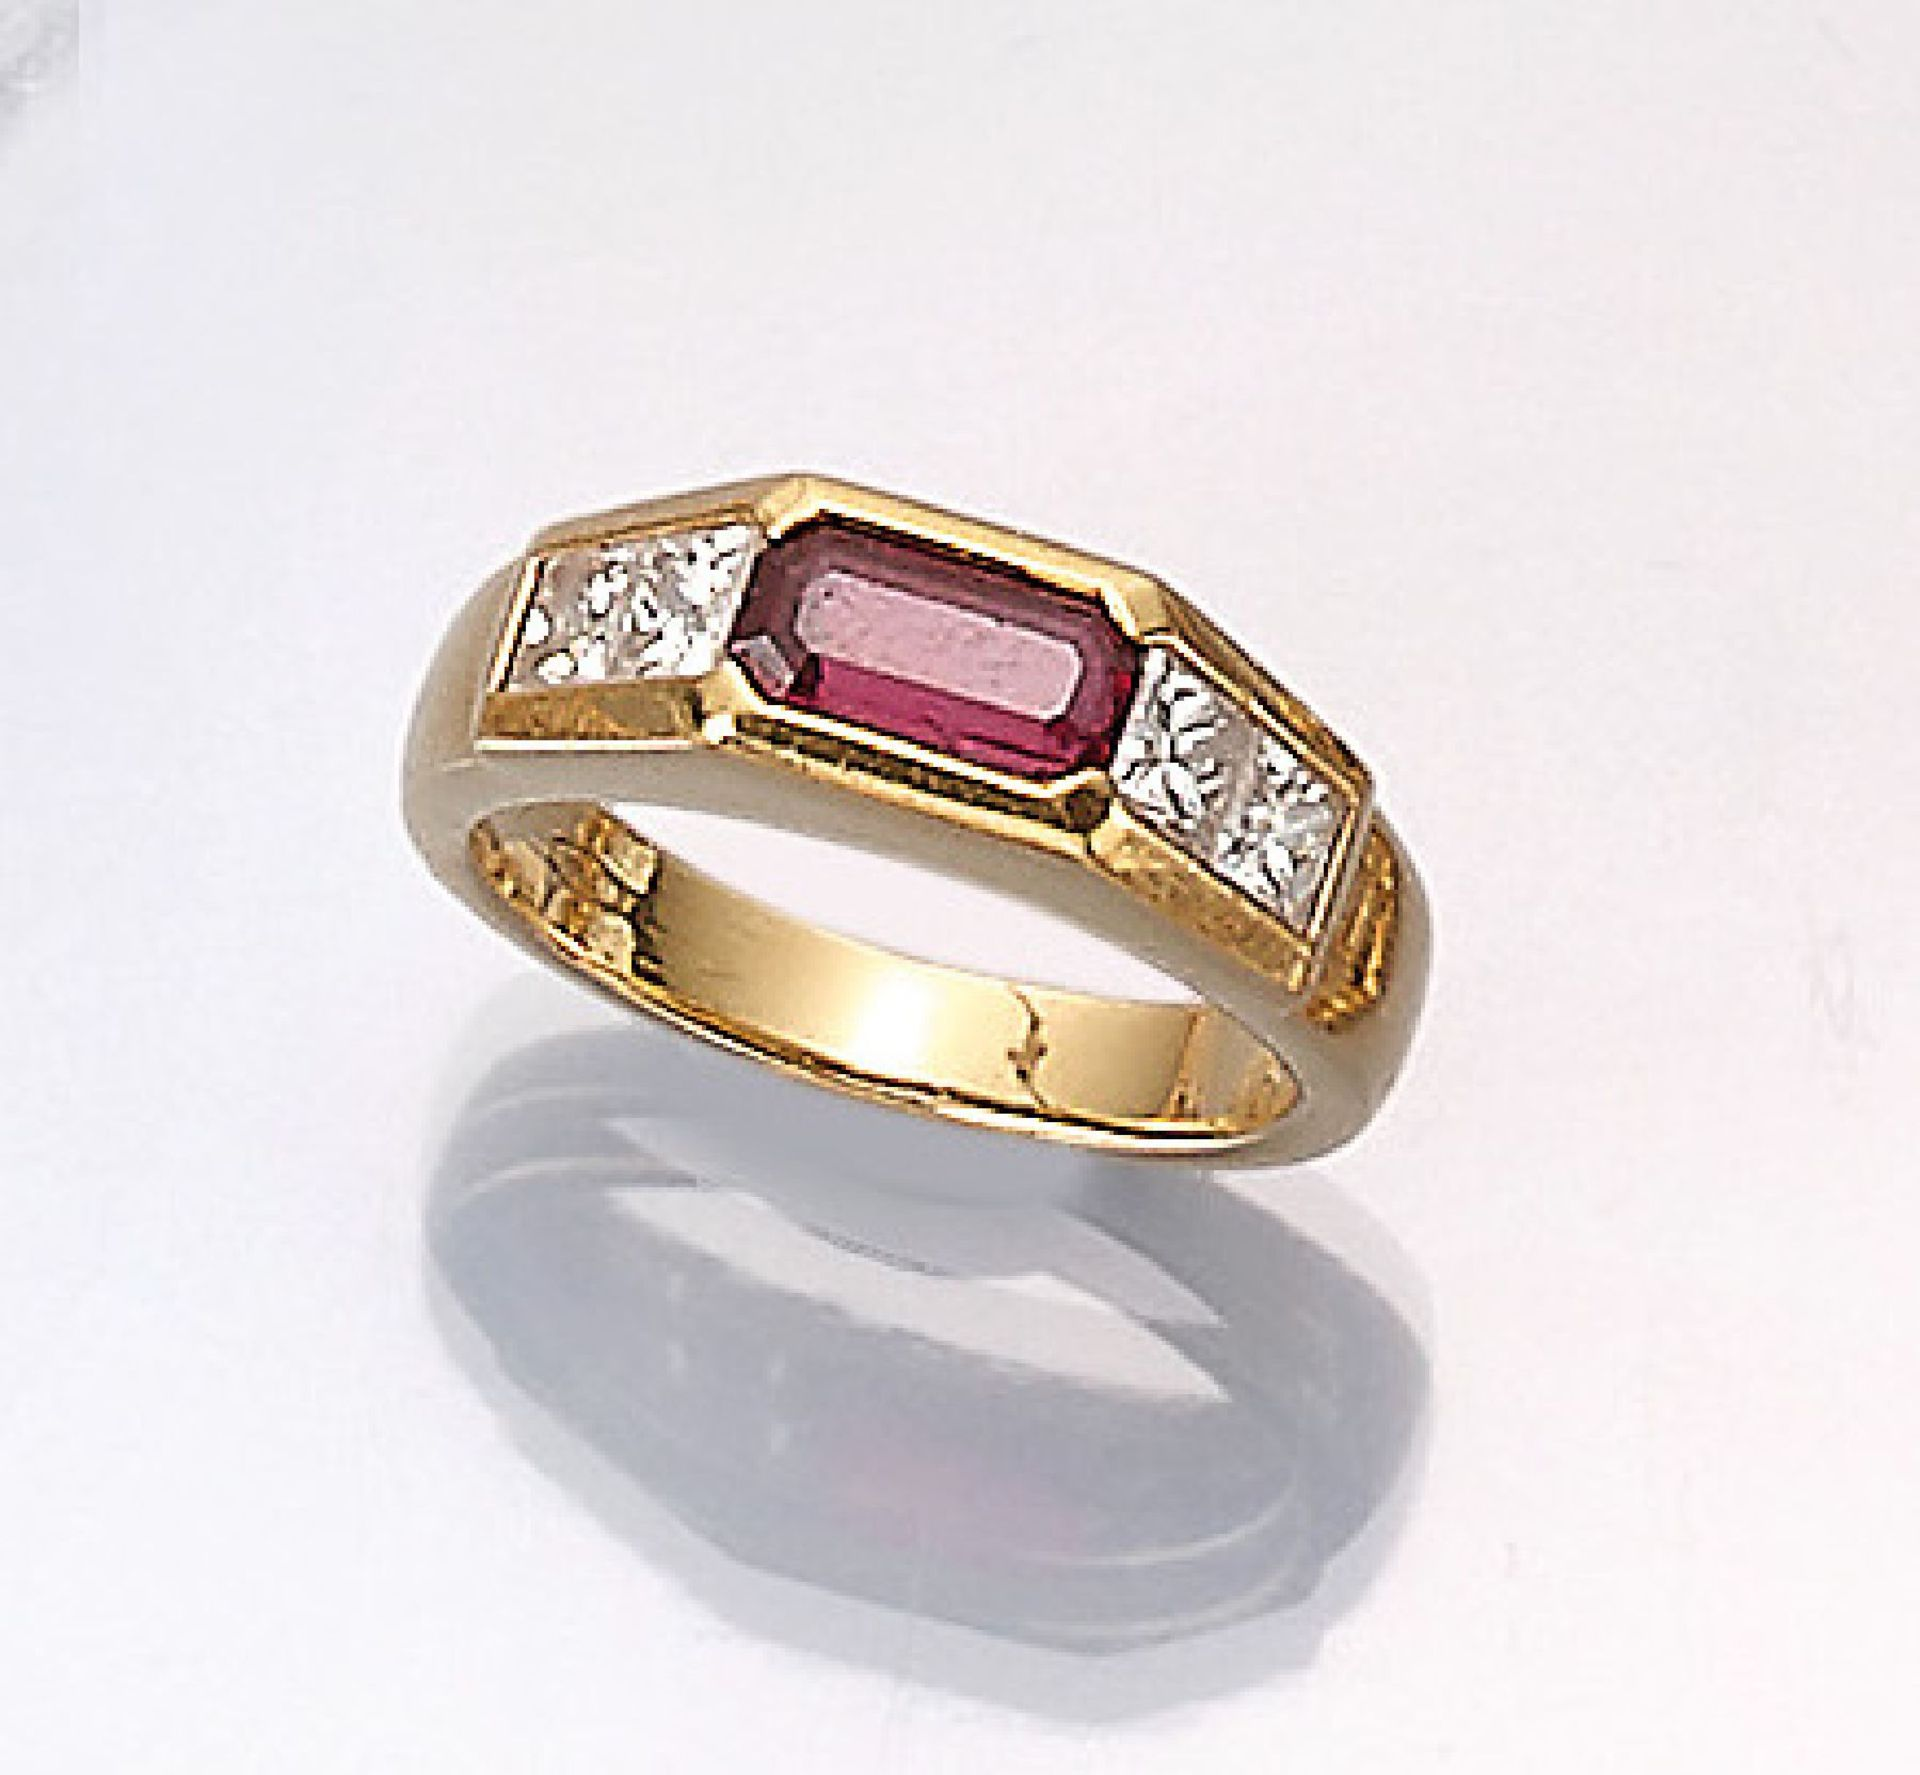 Los 61518 - 18 kt gold ring with ruby and diamonds , YG 750/000, bevelled ruby baguette approx. 0.80 ct, 4